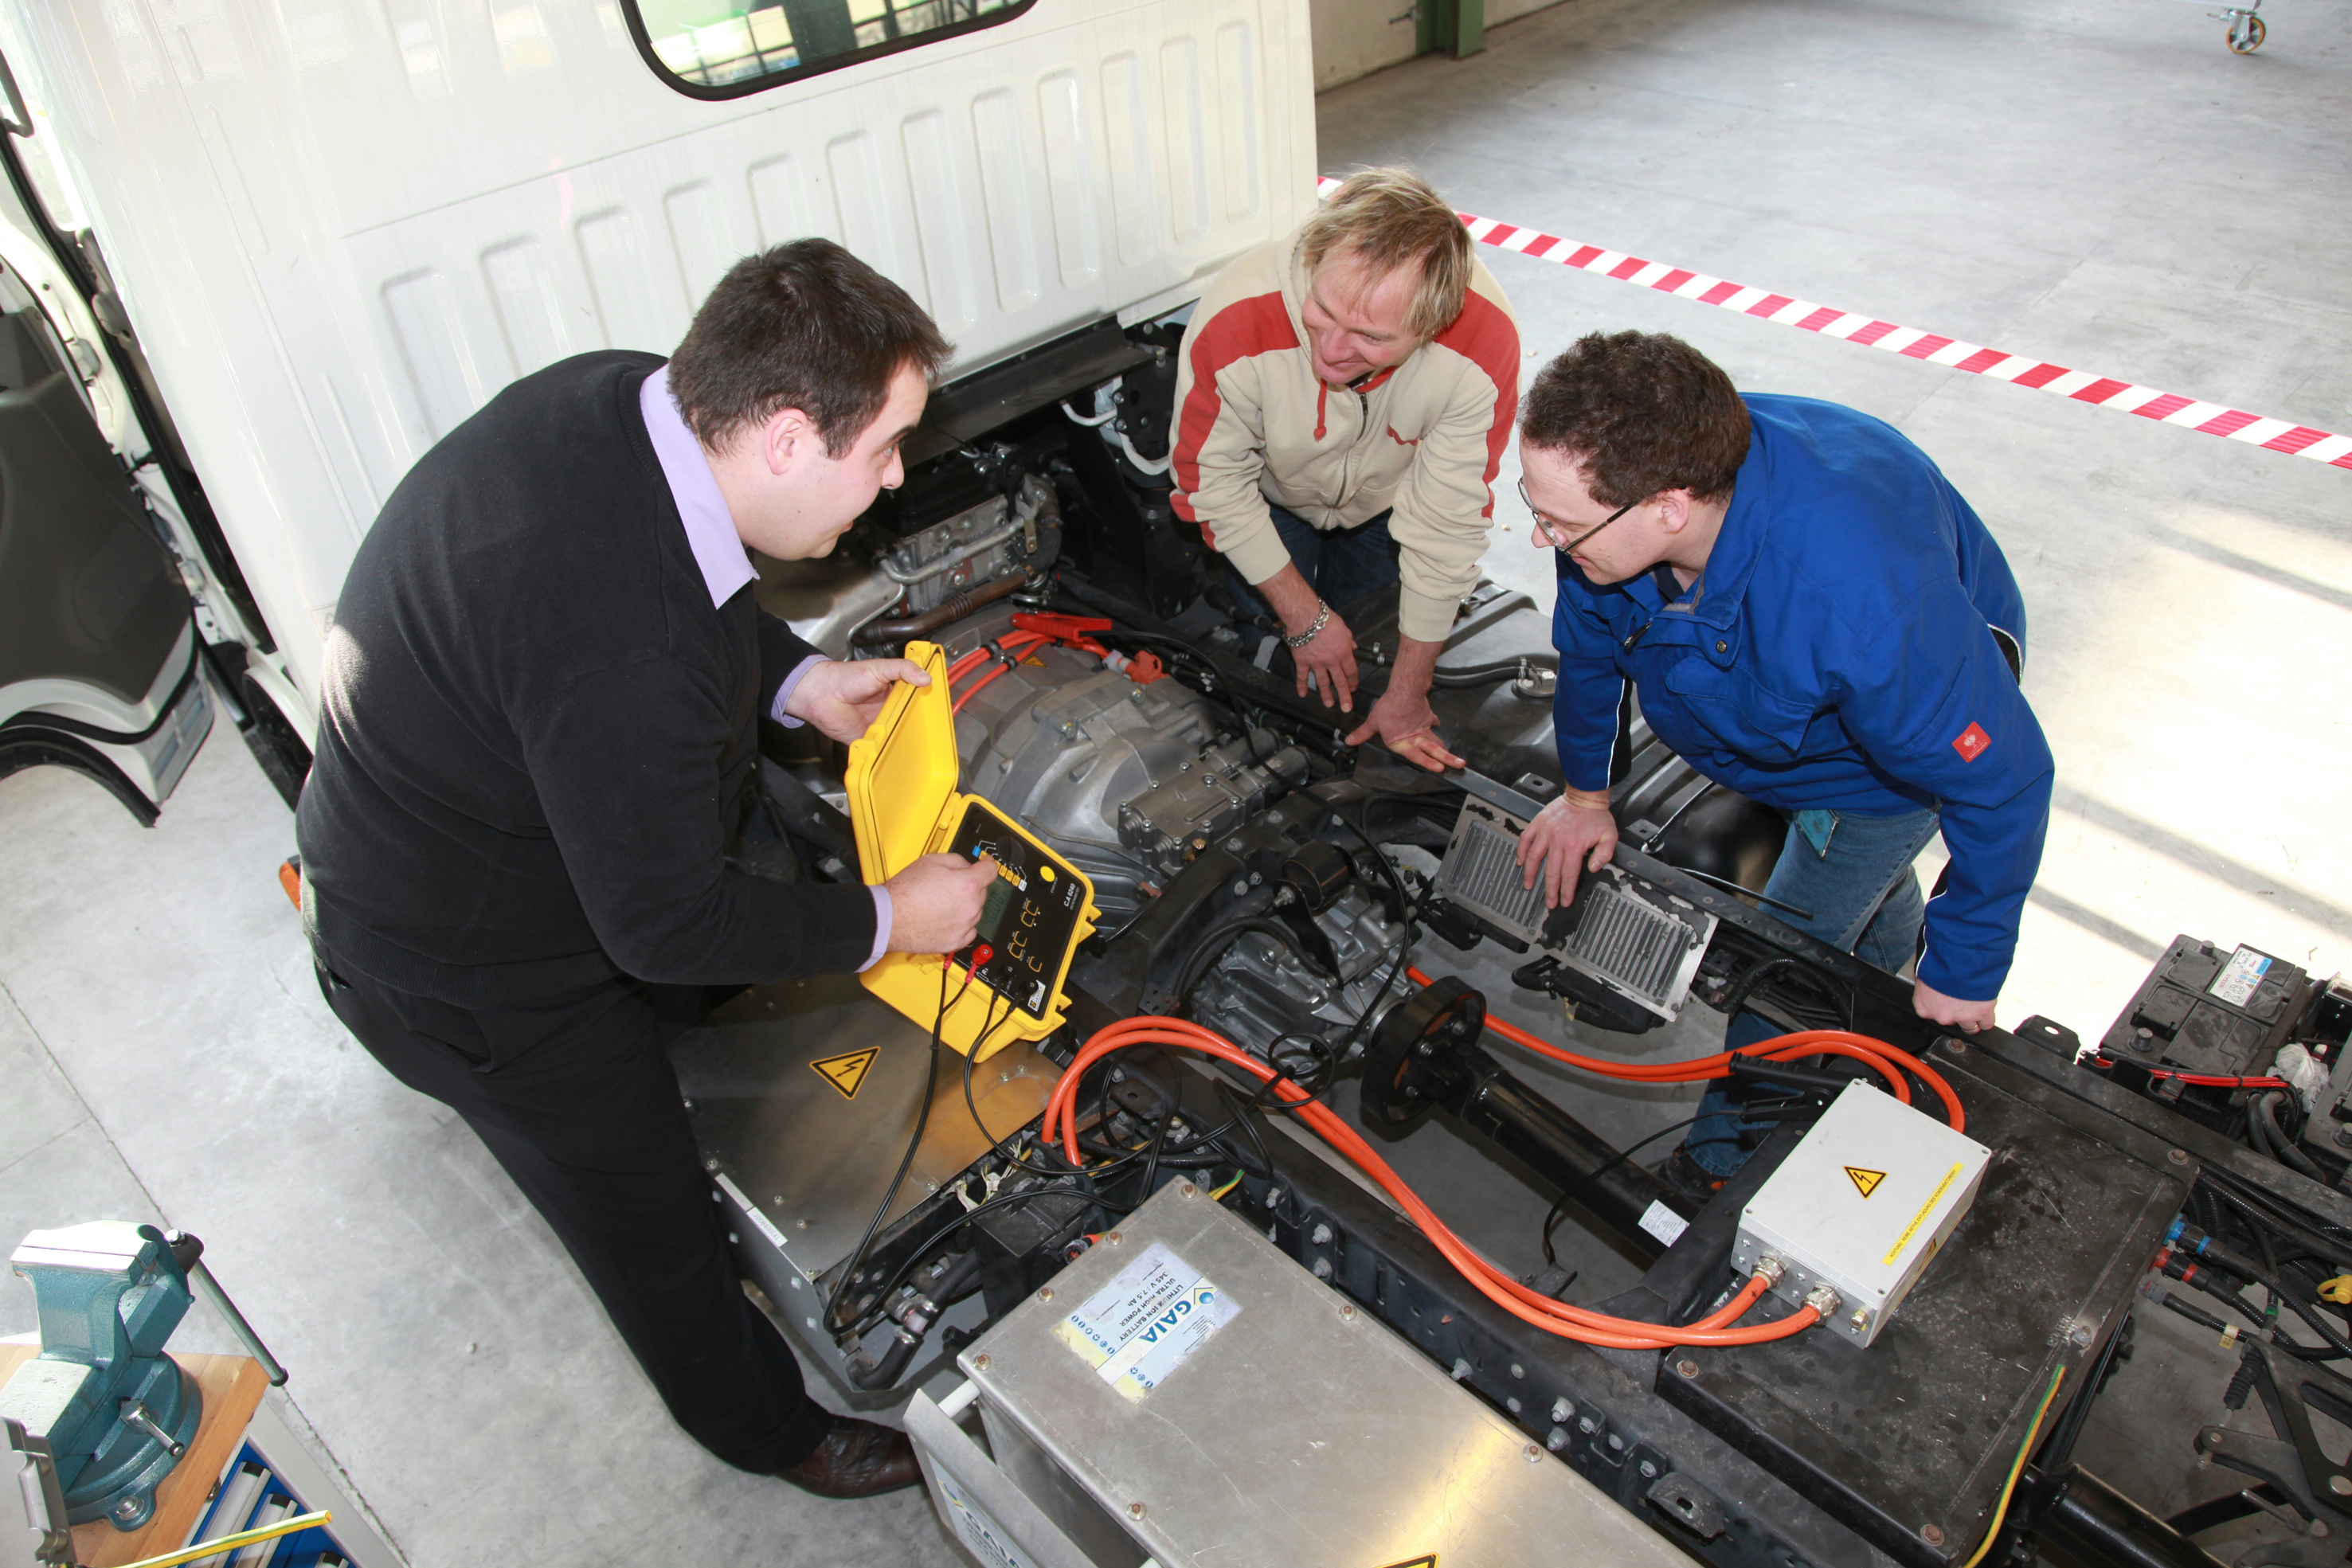 14-1_zf_services_high-voltage_training.jpg